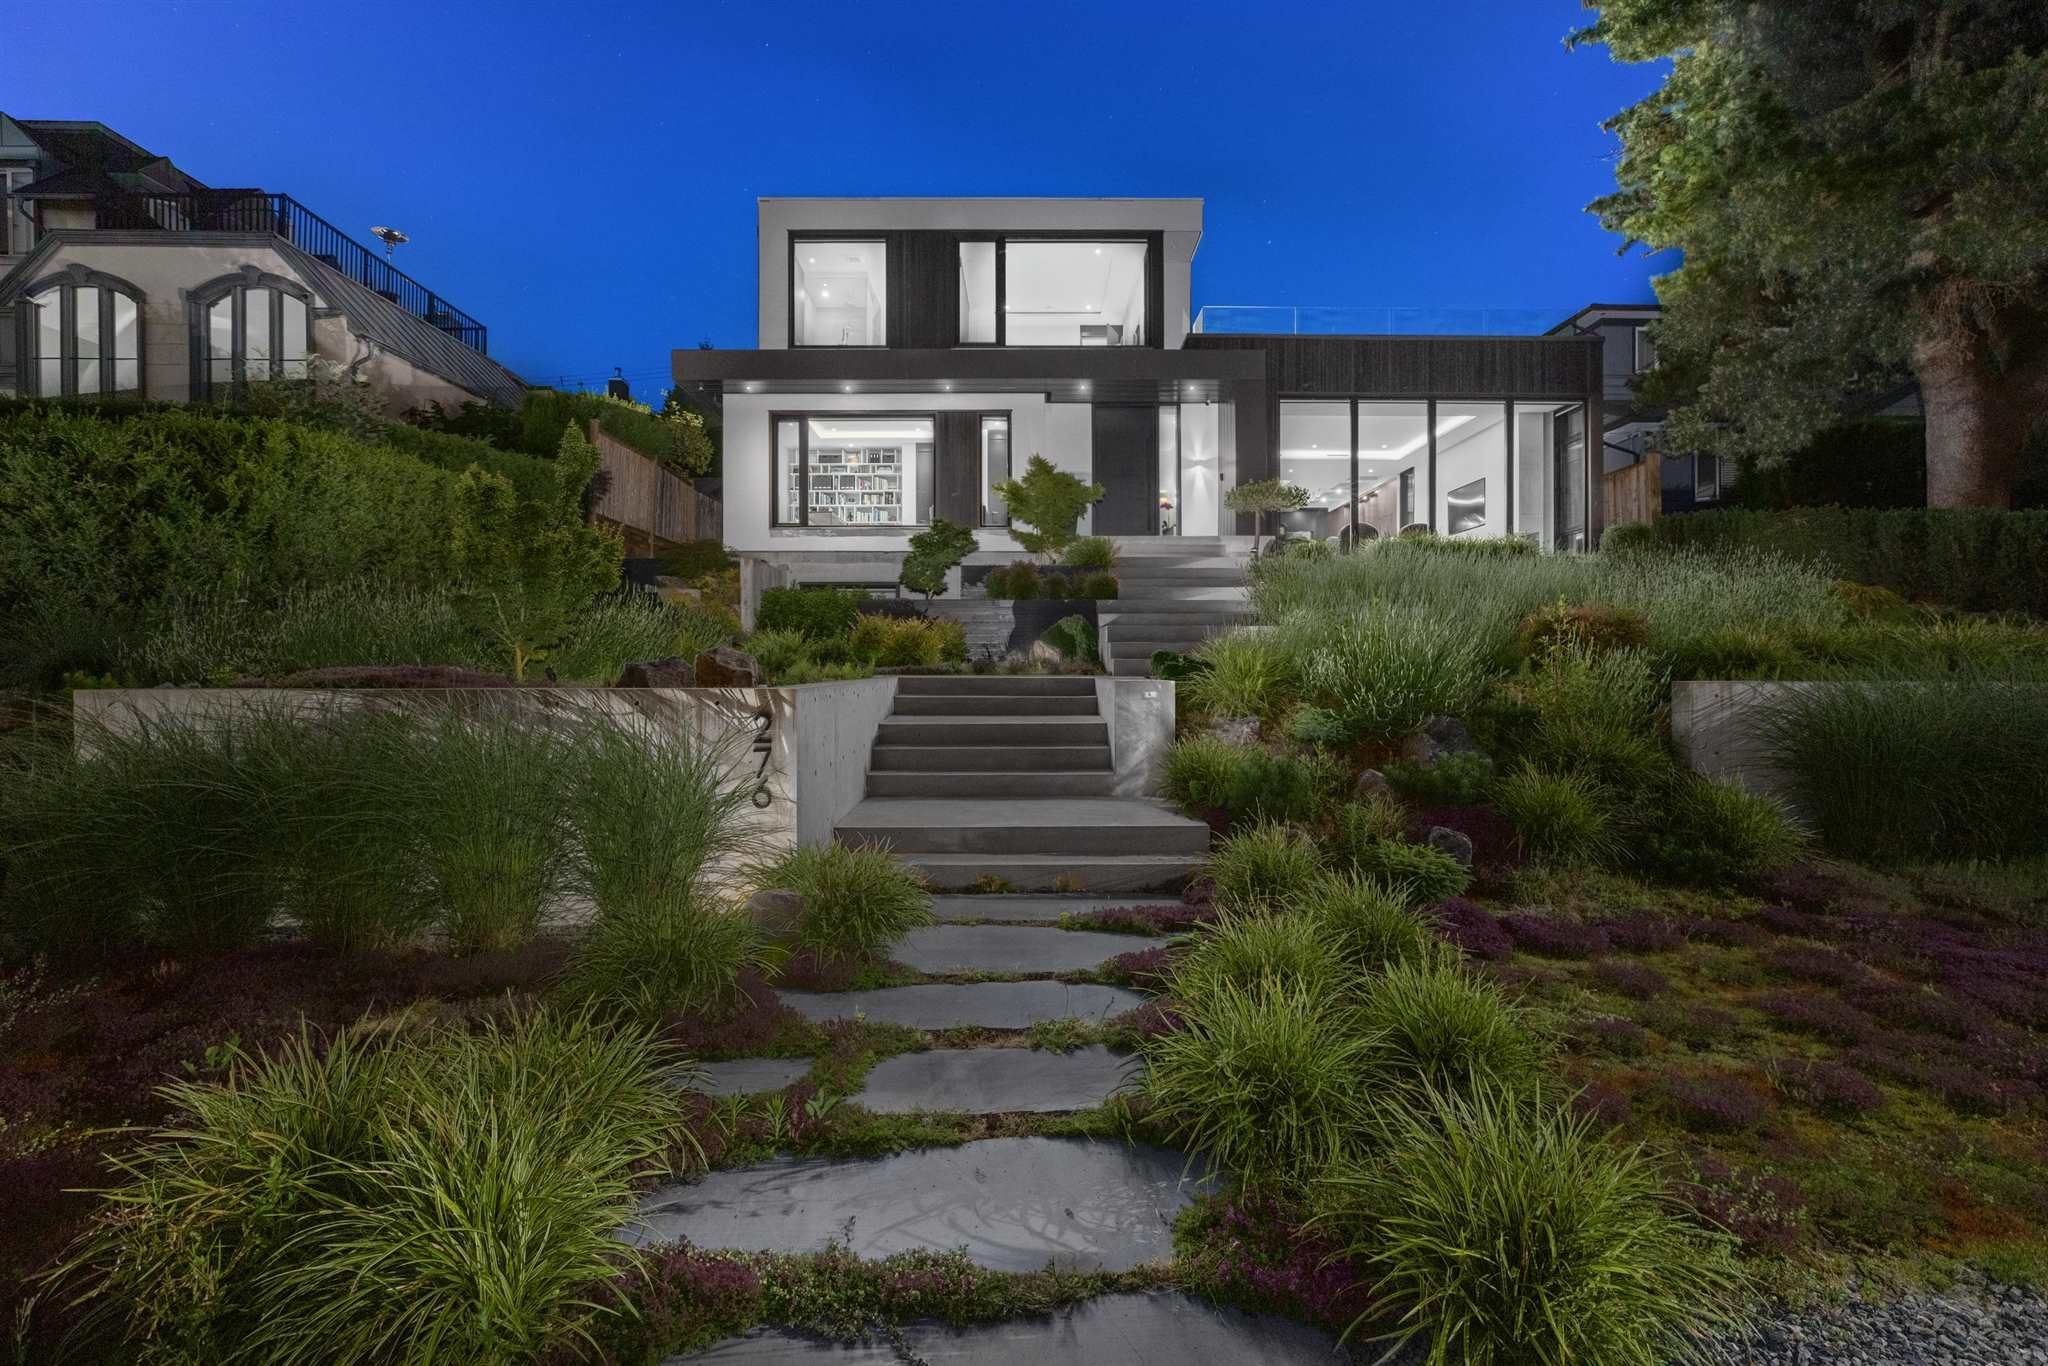 Main Photo: 276 SANDRINGHAM Crescent in North Vancouver: Upper Lonsdale House for sale : MLS®# R2617703